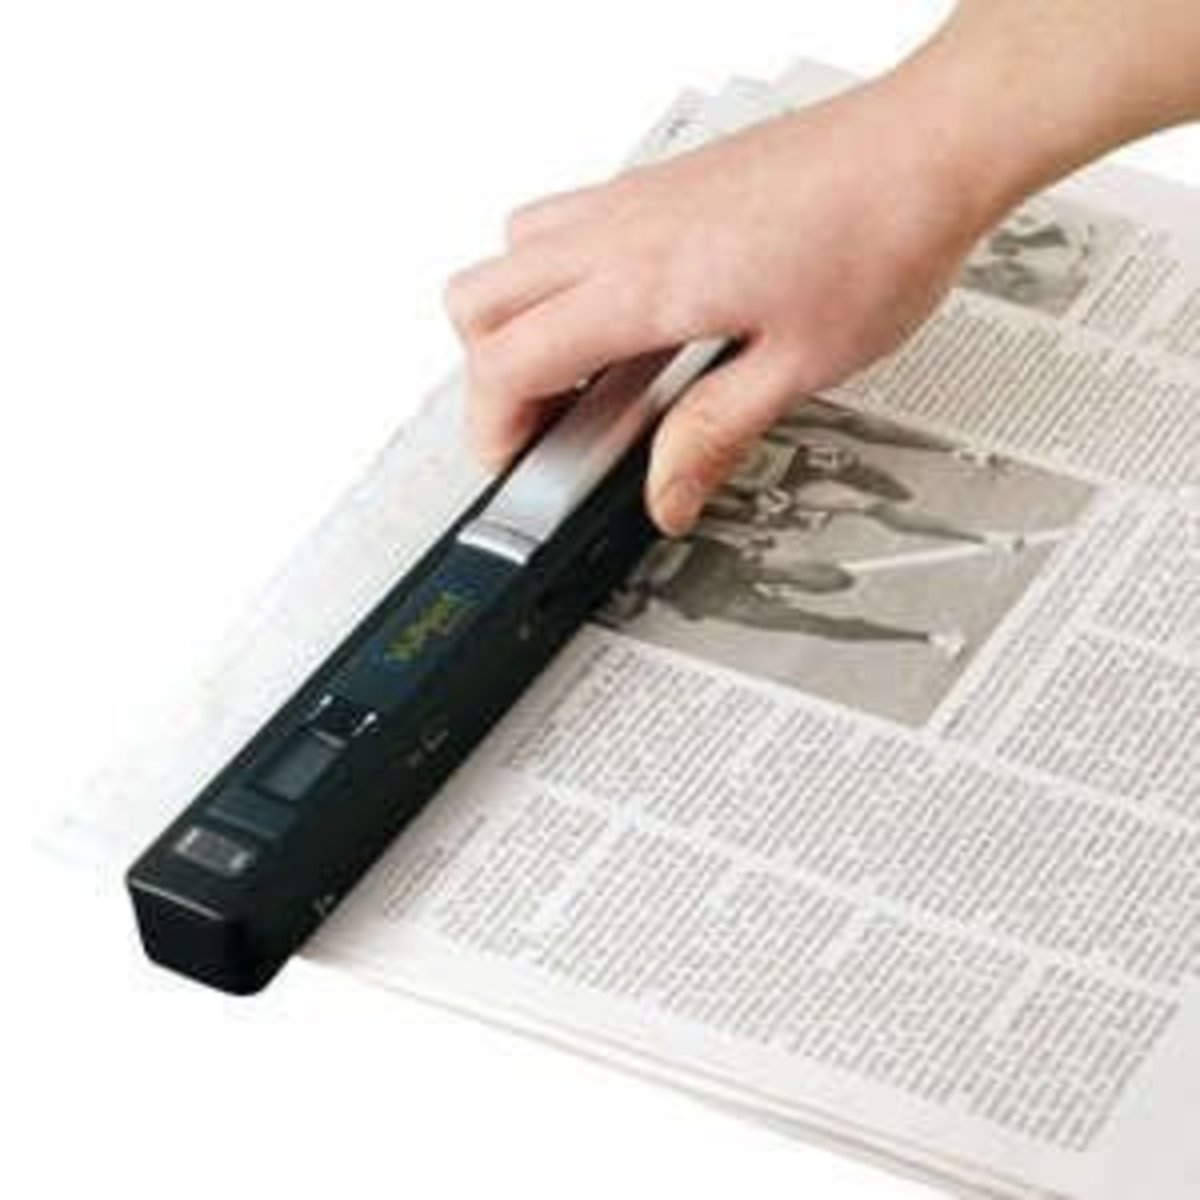 Portable Scanner - 2013 Best Gifts for Men: Cool Gadgets Gift Ideas, by Rosie2010